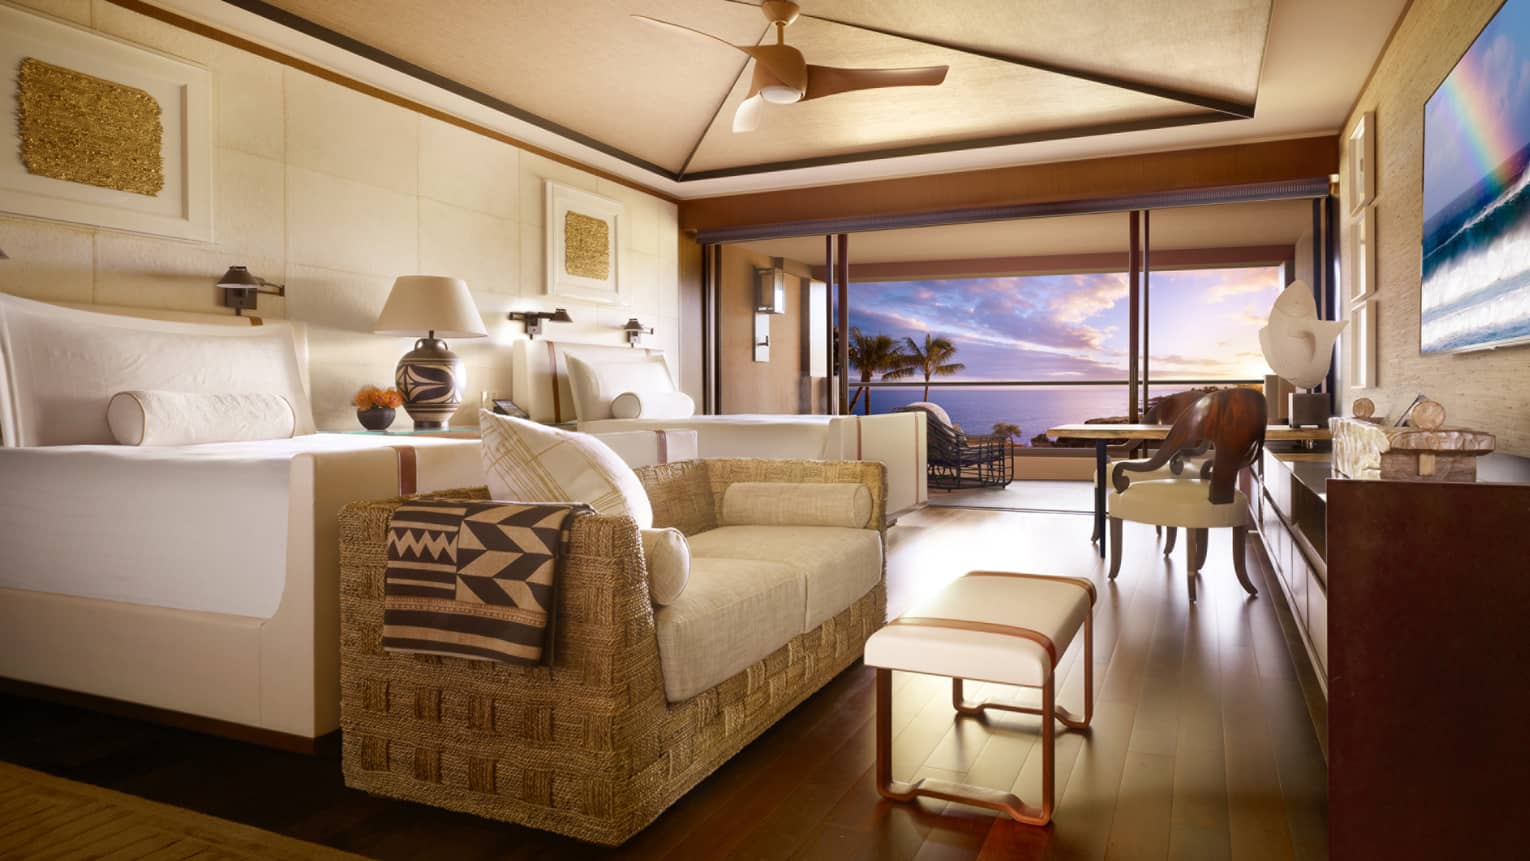 four season lanai in Hotel design ideas at home